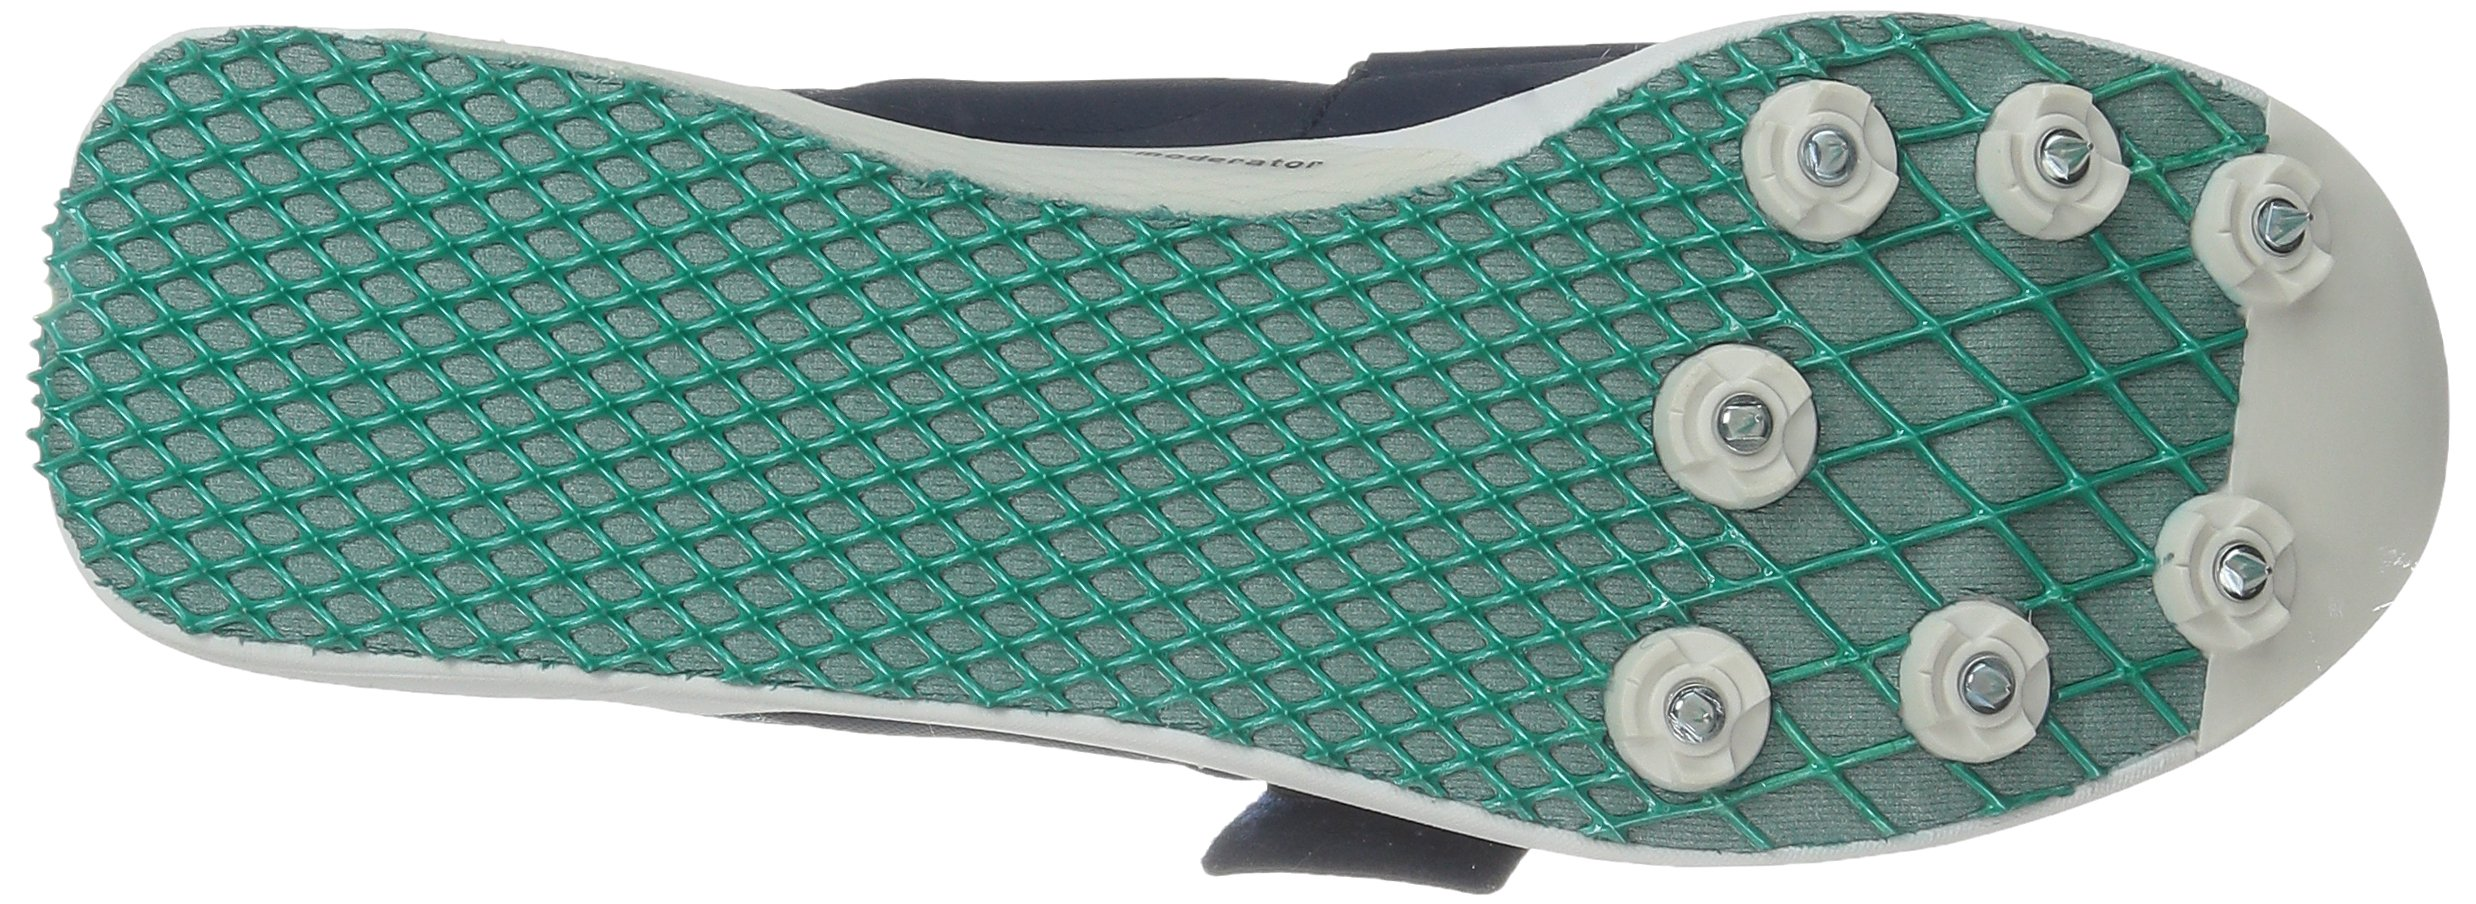 adidas Performance Women's Adizero TJ/PV Running Shoe with Spikes,Collegiate Navy/White/Green,14 M US by adidas (Image #3)